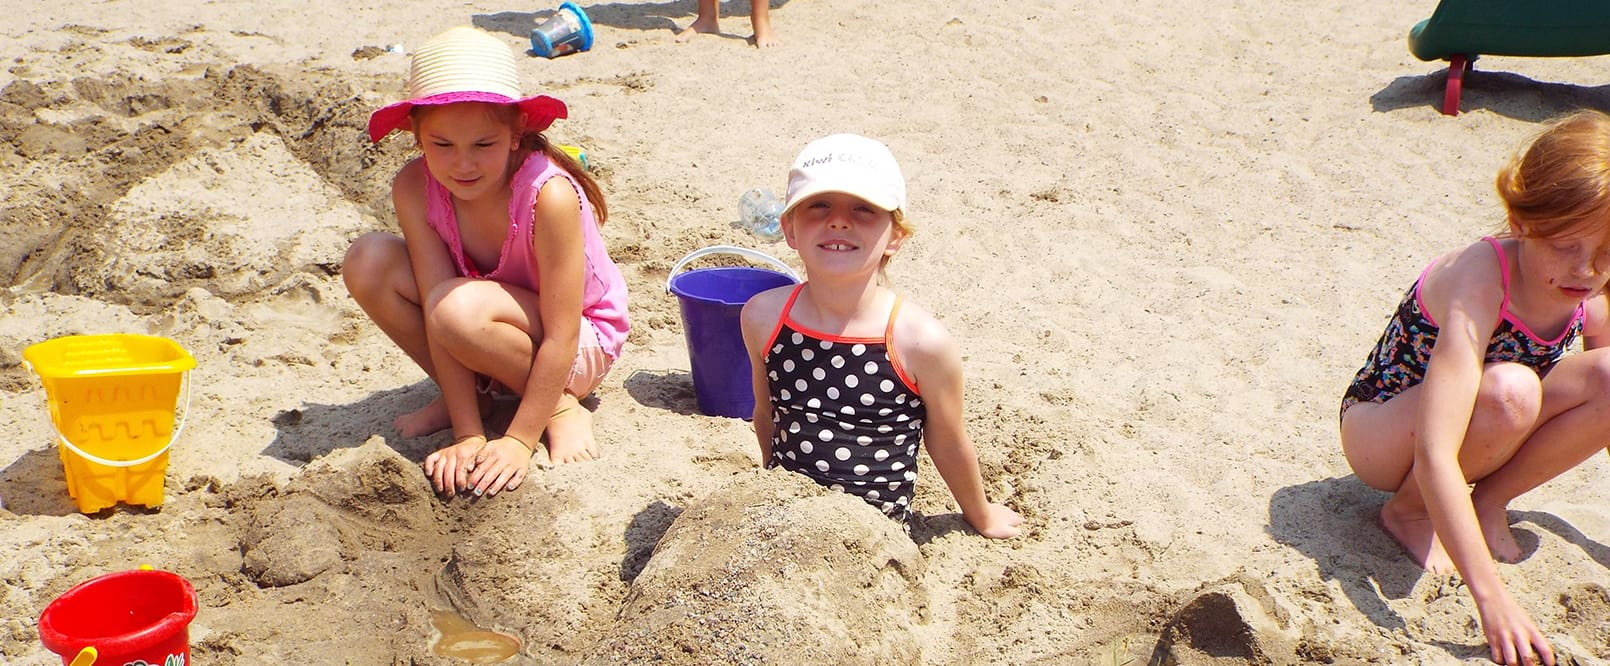 kids making sand castles at beach